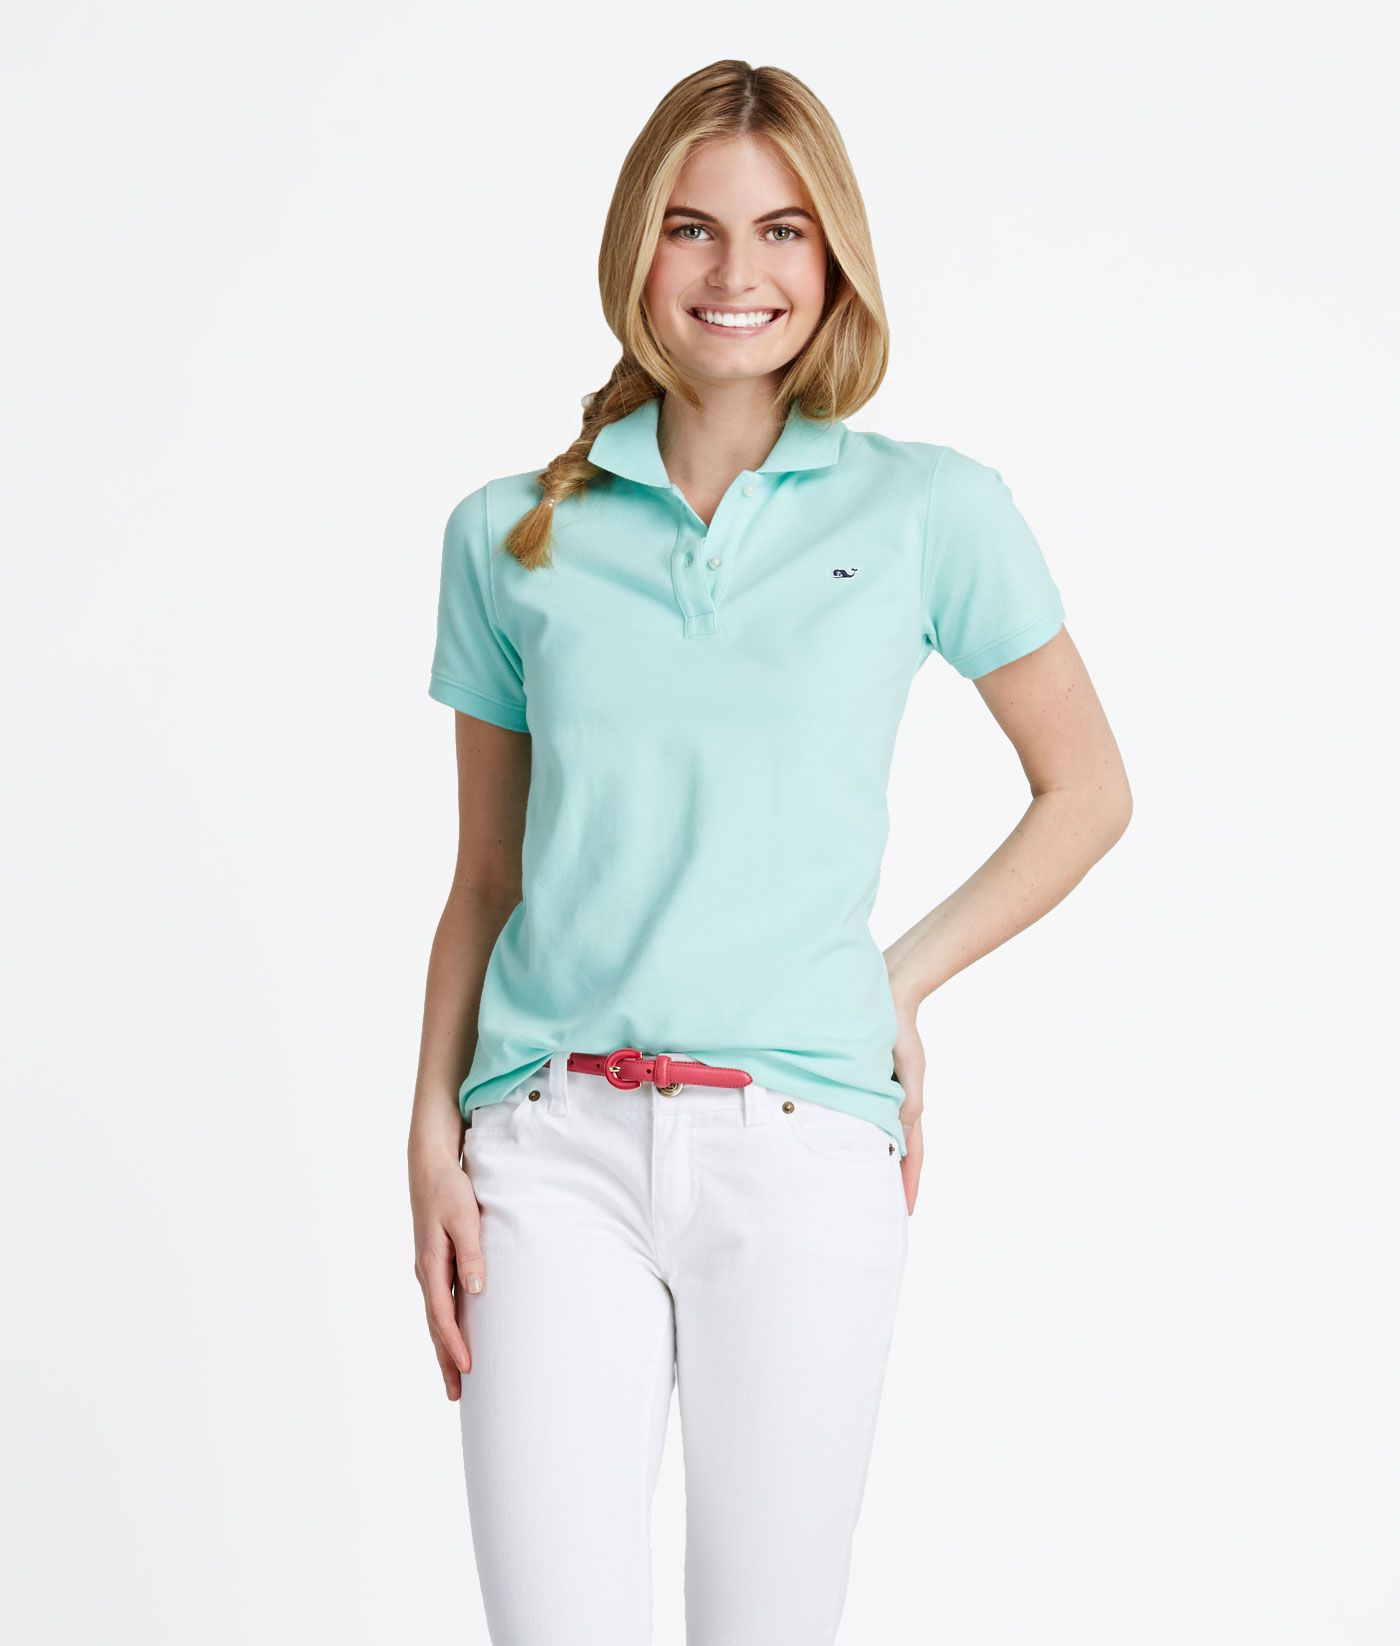 Women 39 S Polo Shirts Classic Short Sleeve Polo Shirt